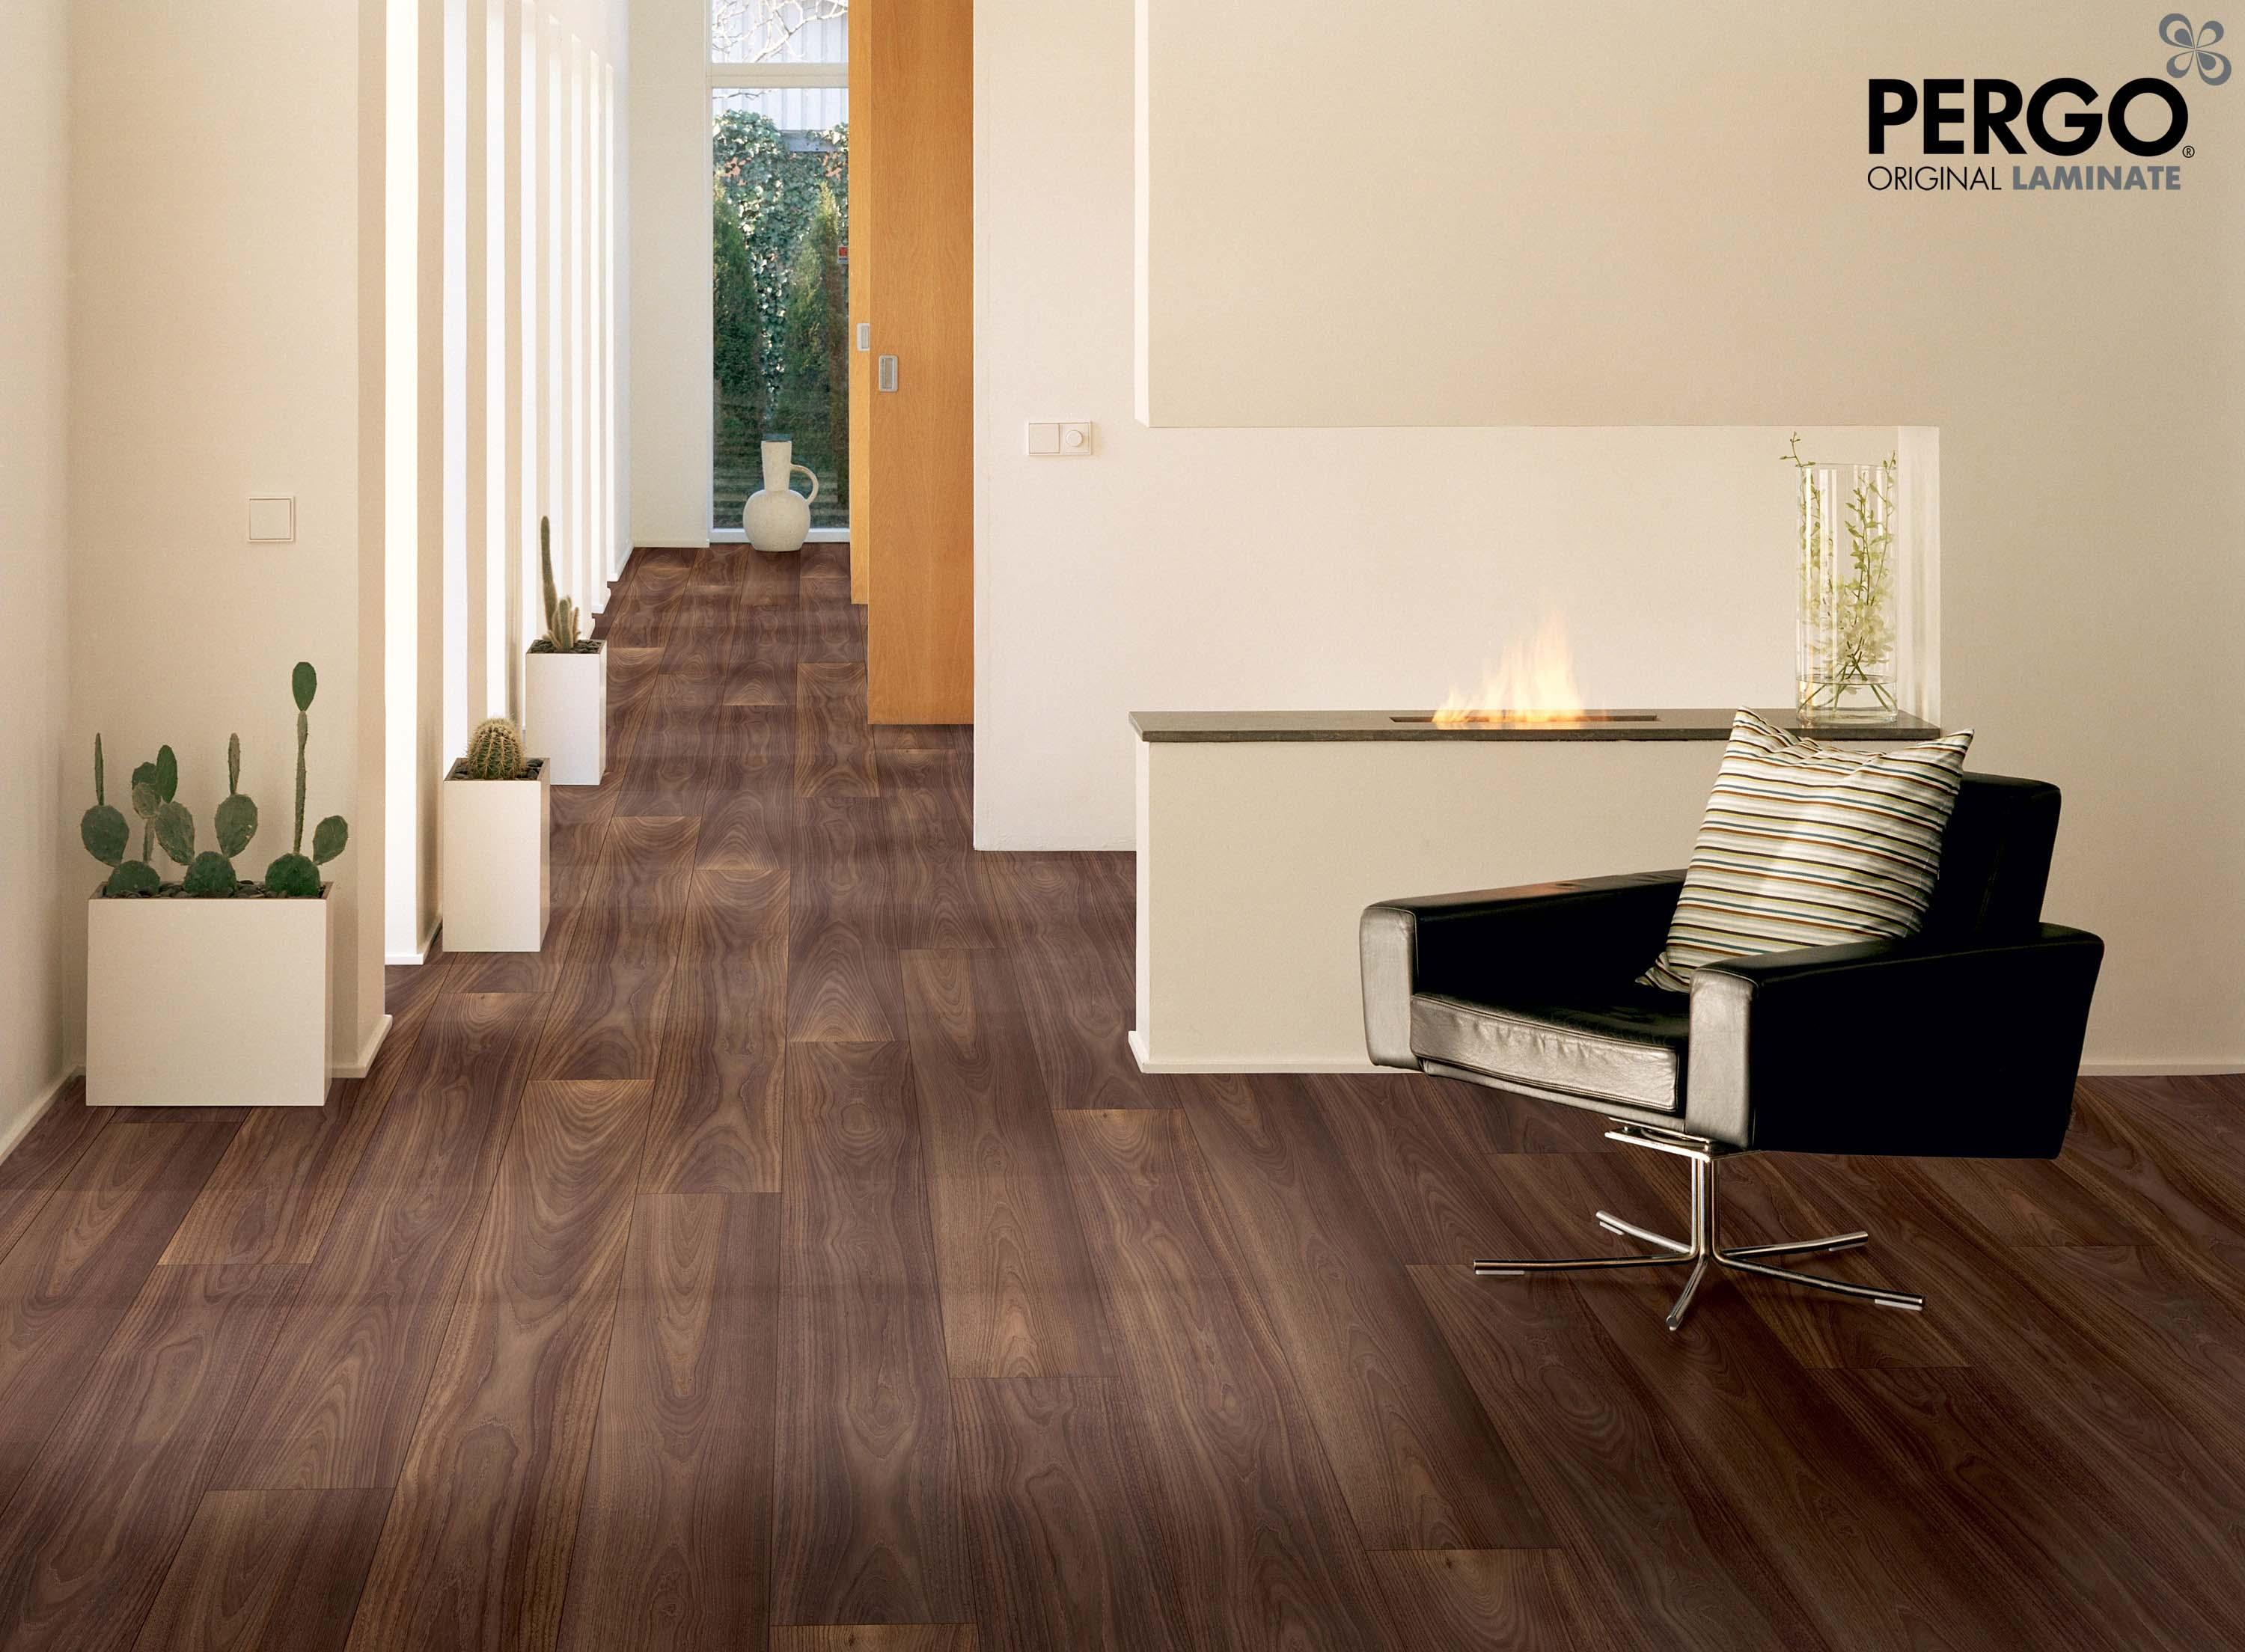 Pergo Parquet Pergos Original Excellence Collection Right Floors For